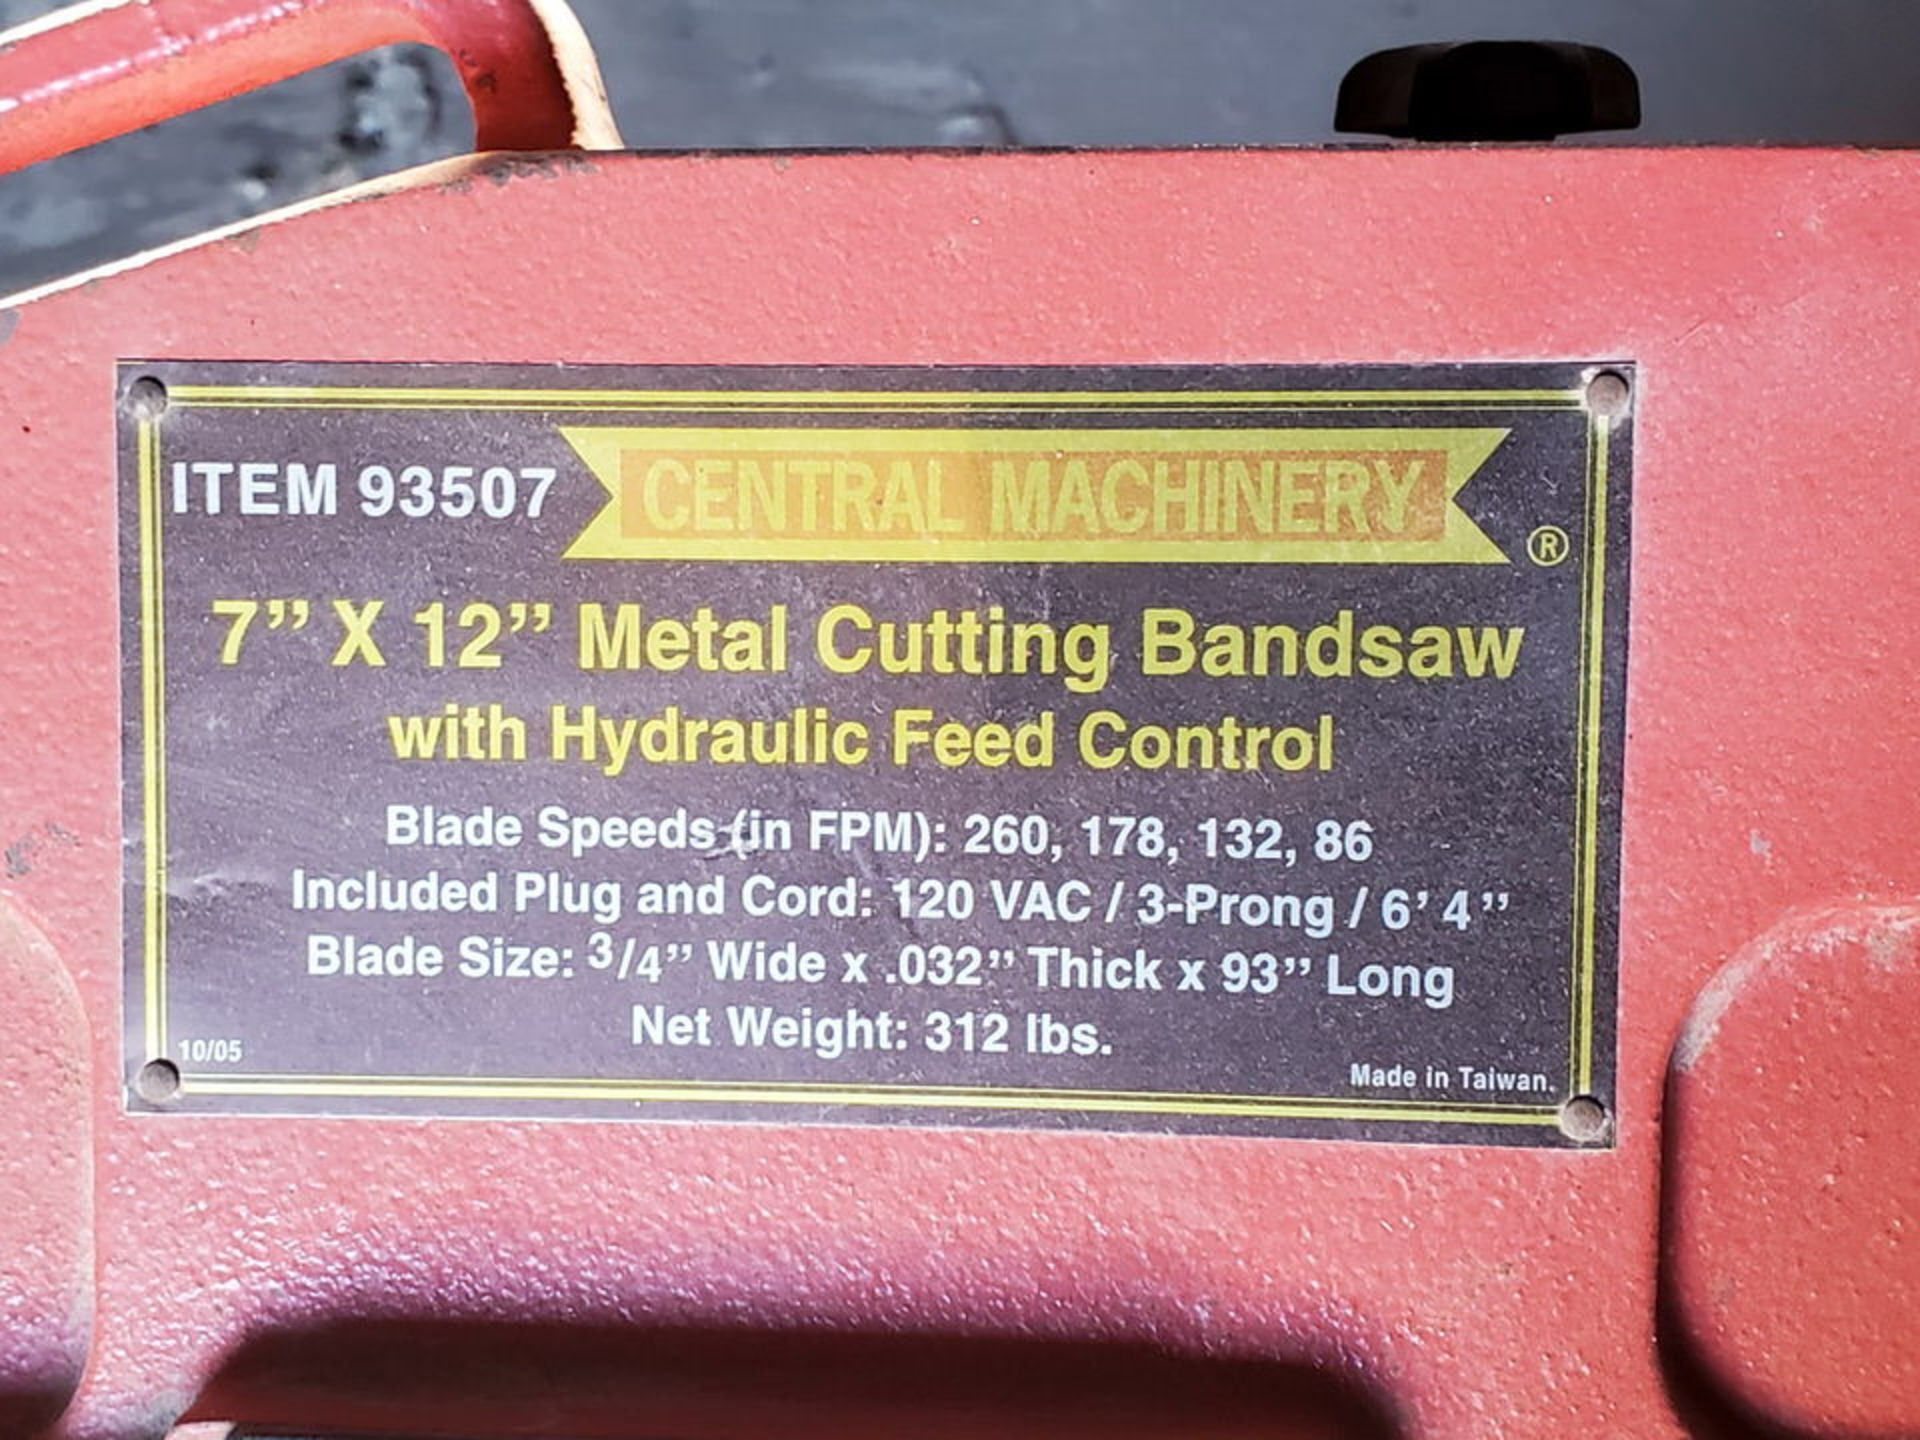 "Central Machinery 7"" x 12"" Cutting Bandsaw Blade Size: 3/4""W x .032Thk x 93""L, 120V - Image 6 of 6"